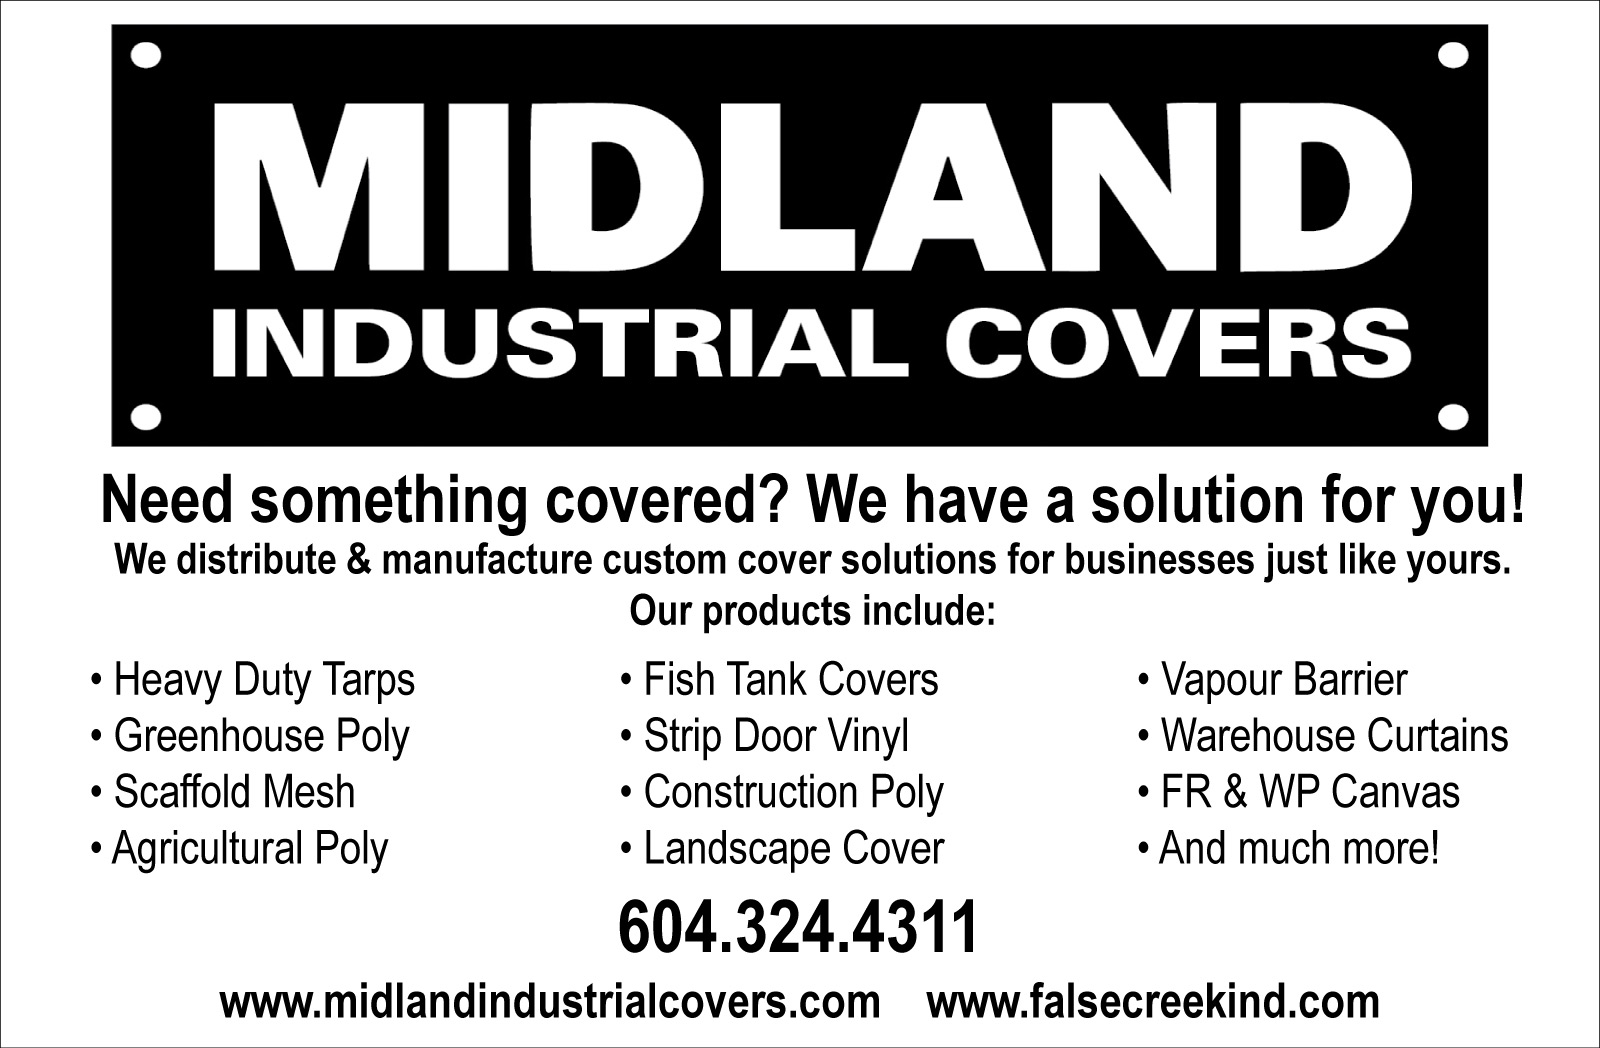 Midland Industrial Covers